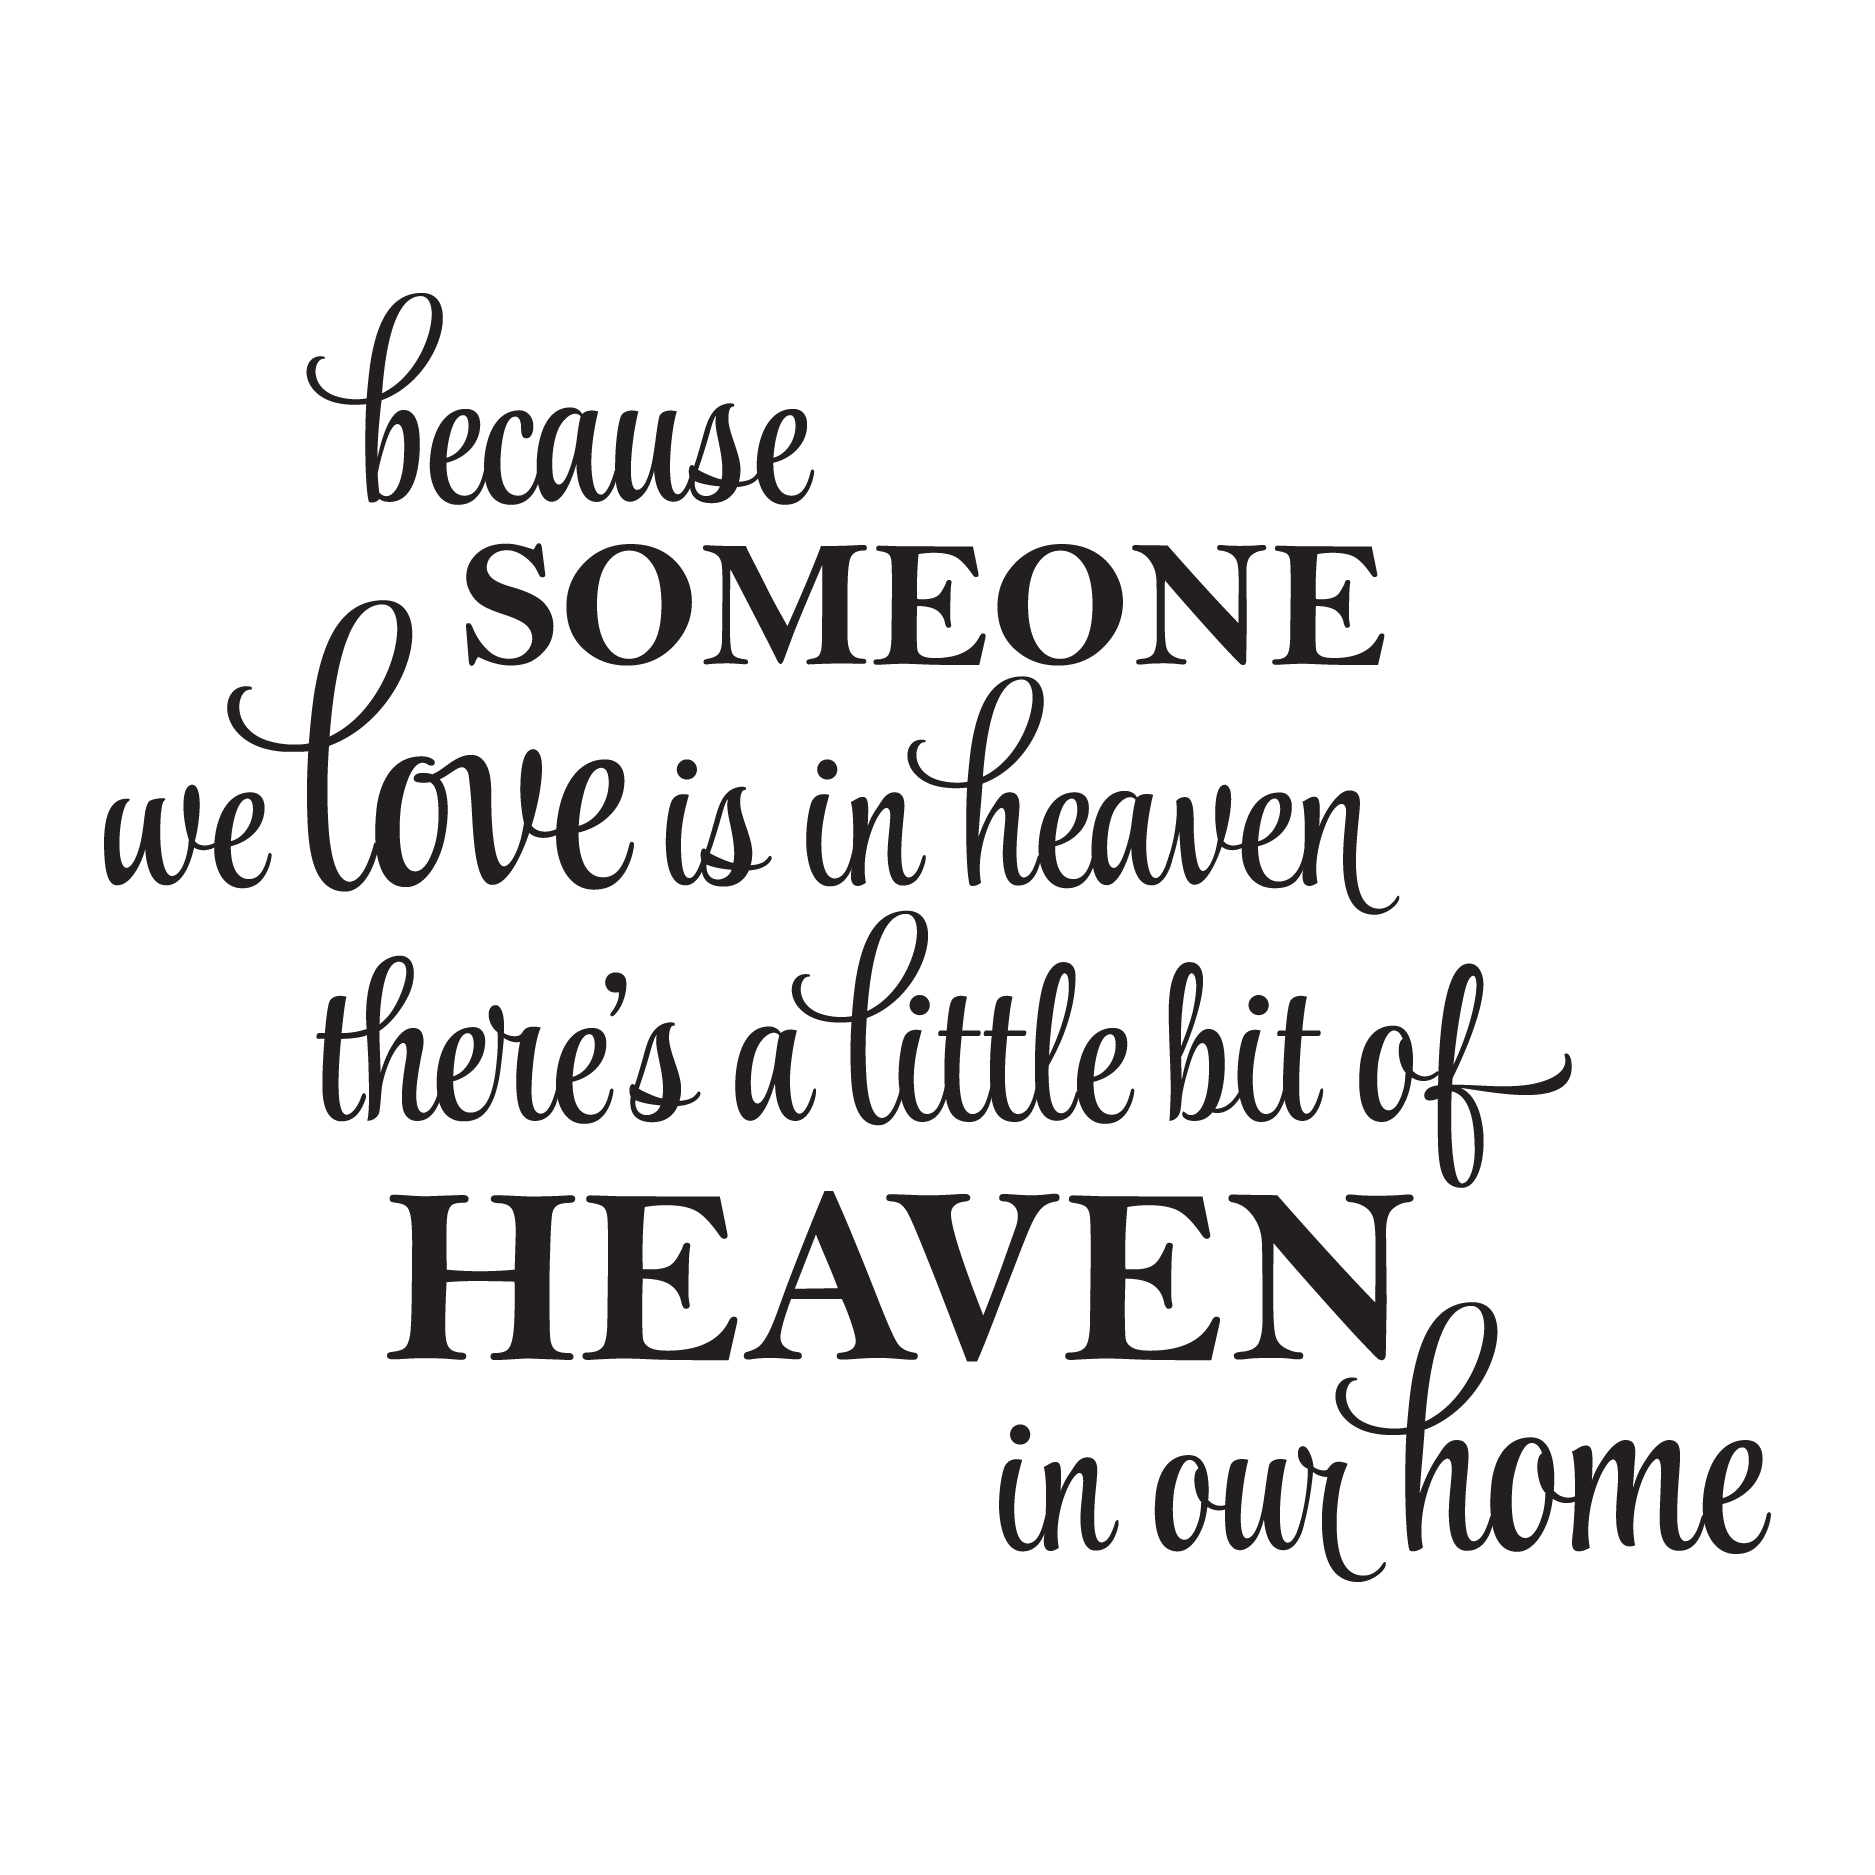 What Is A Good Housewarming Gift A Little Bit Of Heaven In Our Home Wall Quotes Decal